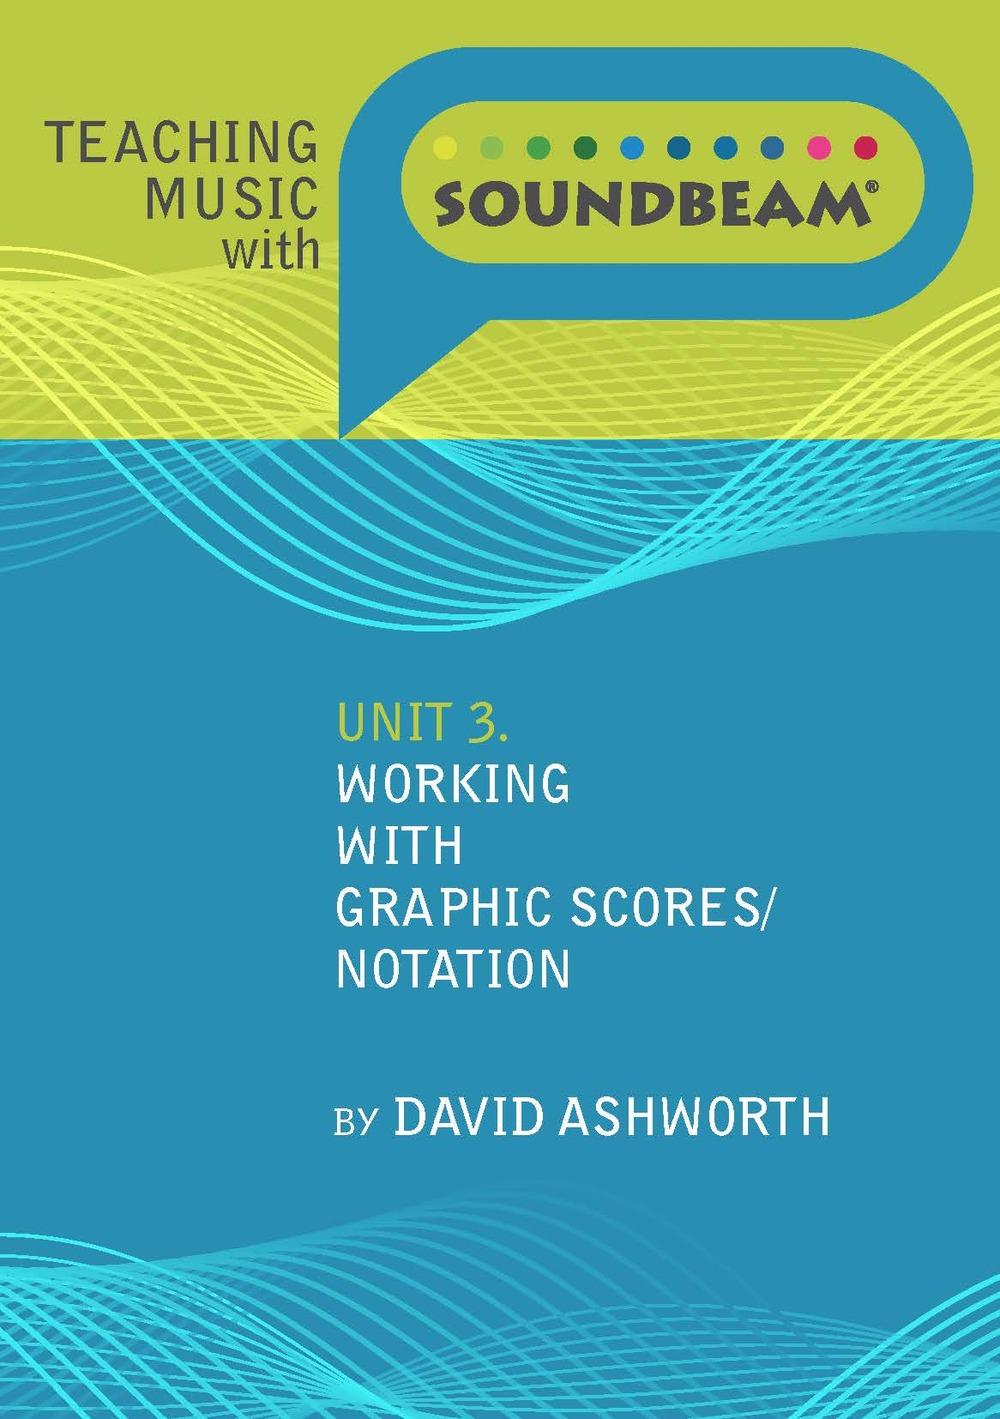 teaching music with soundbeam